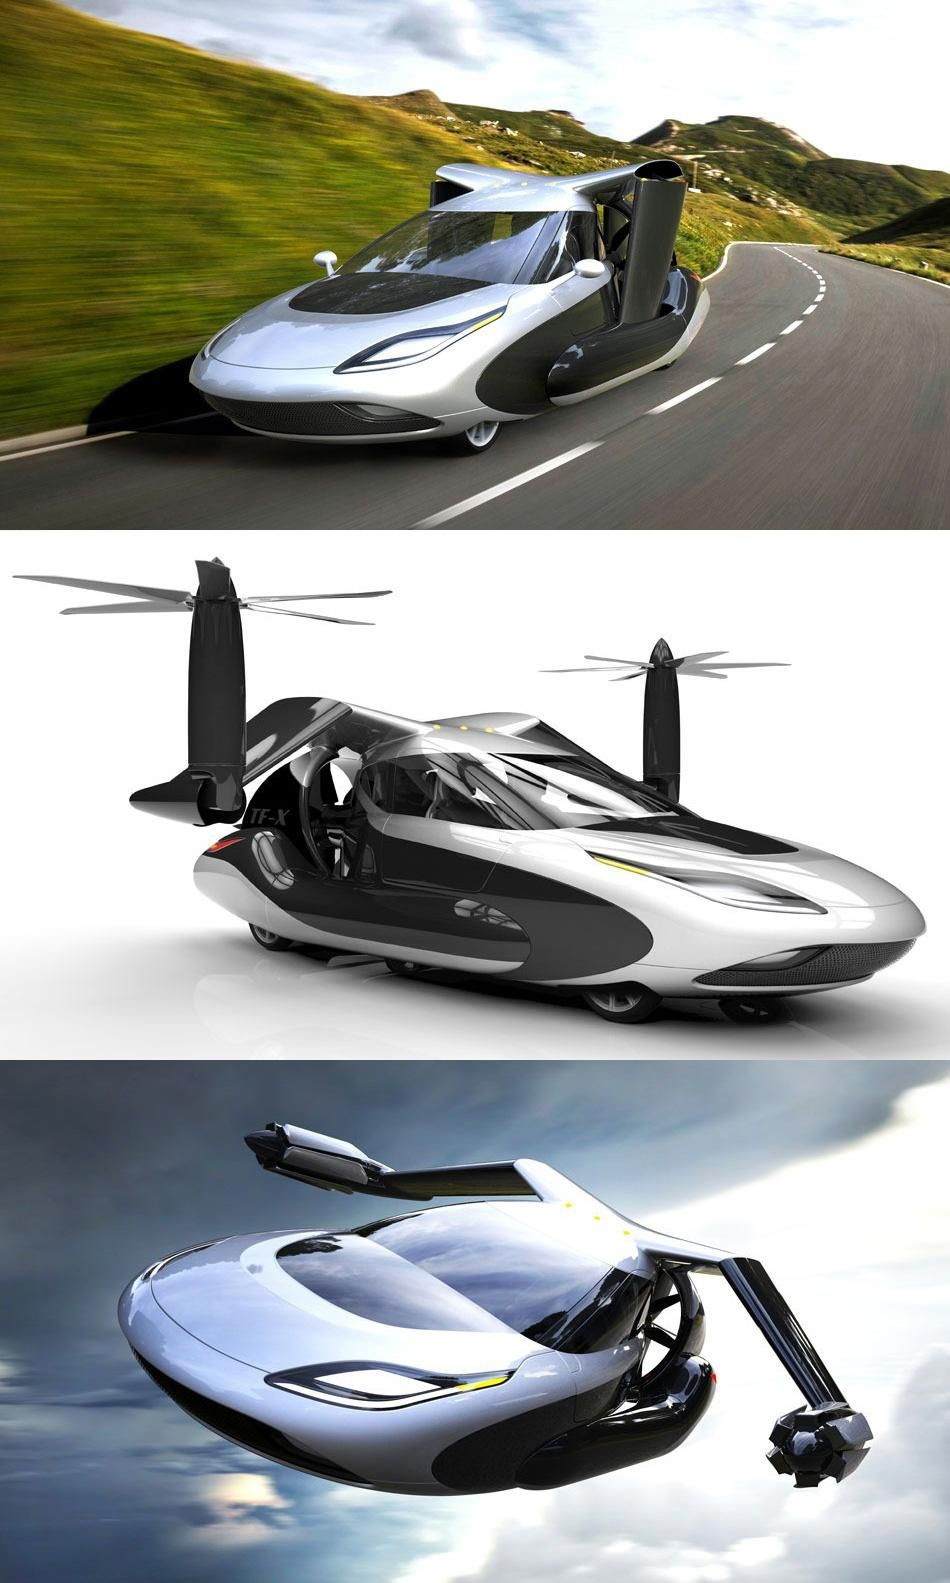 The Coolest Flying Car Concept Has Helicopter Blades And An Electric